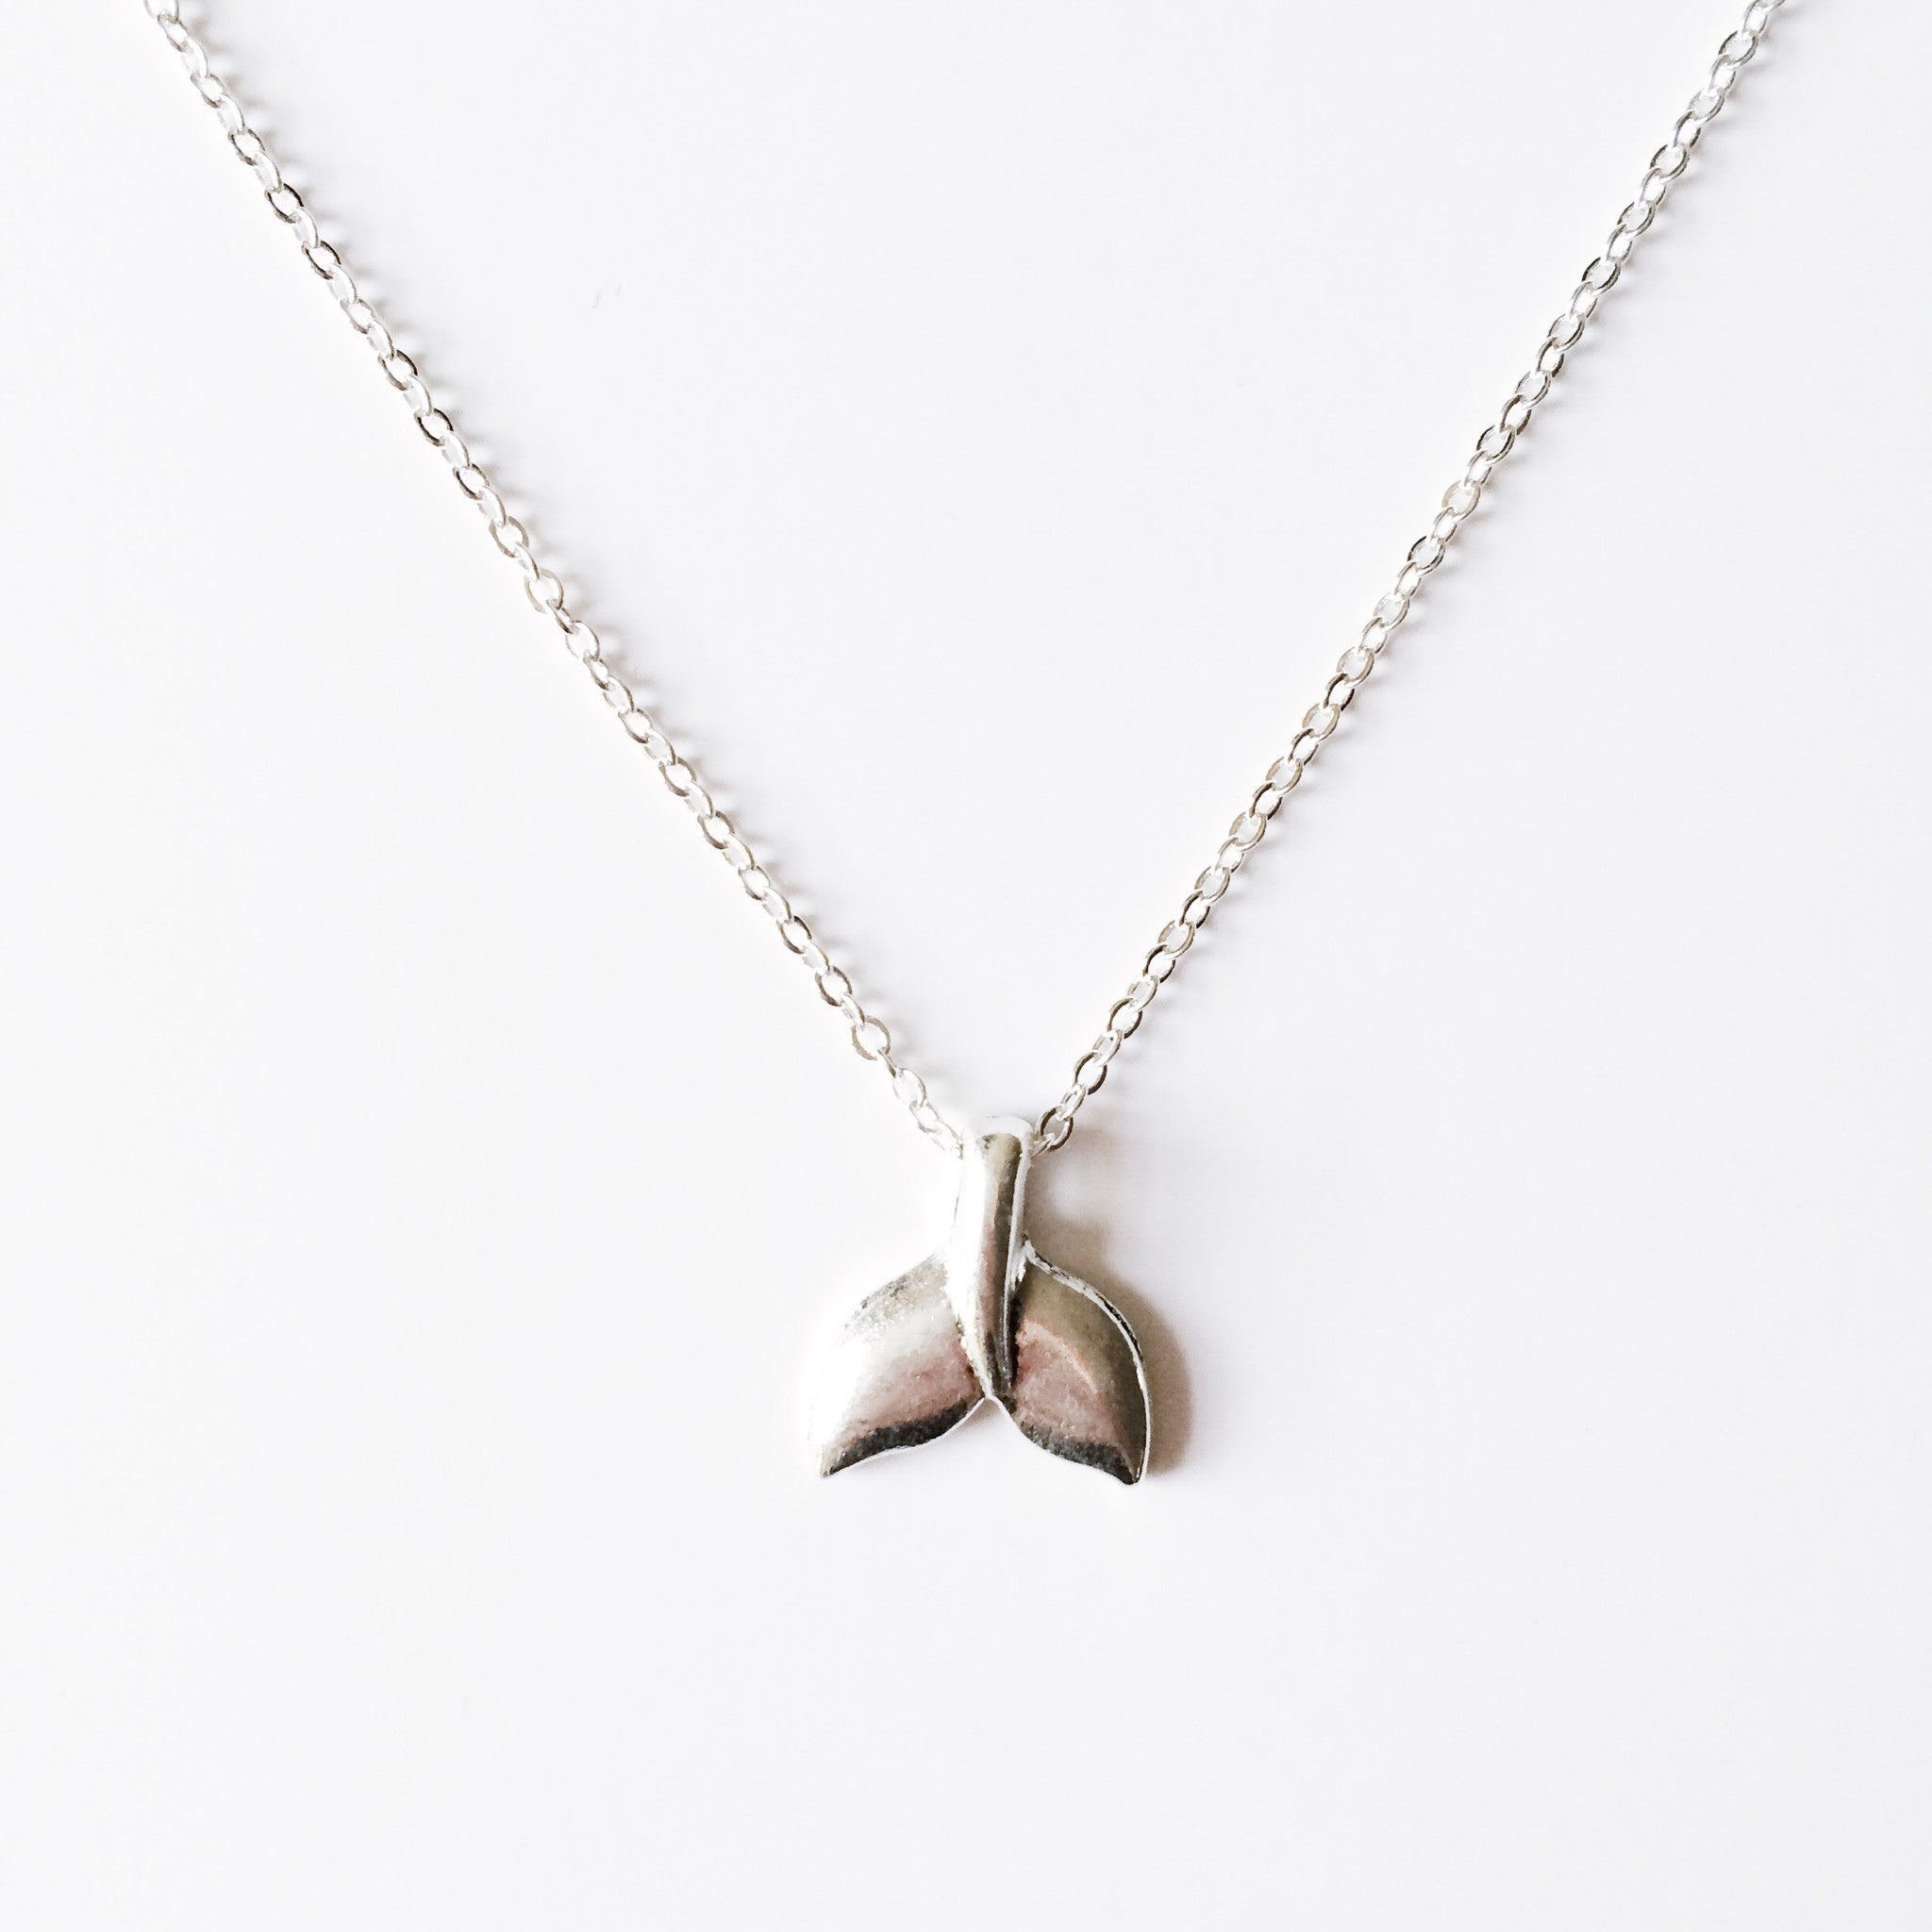 Whale Tail Necklace